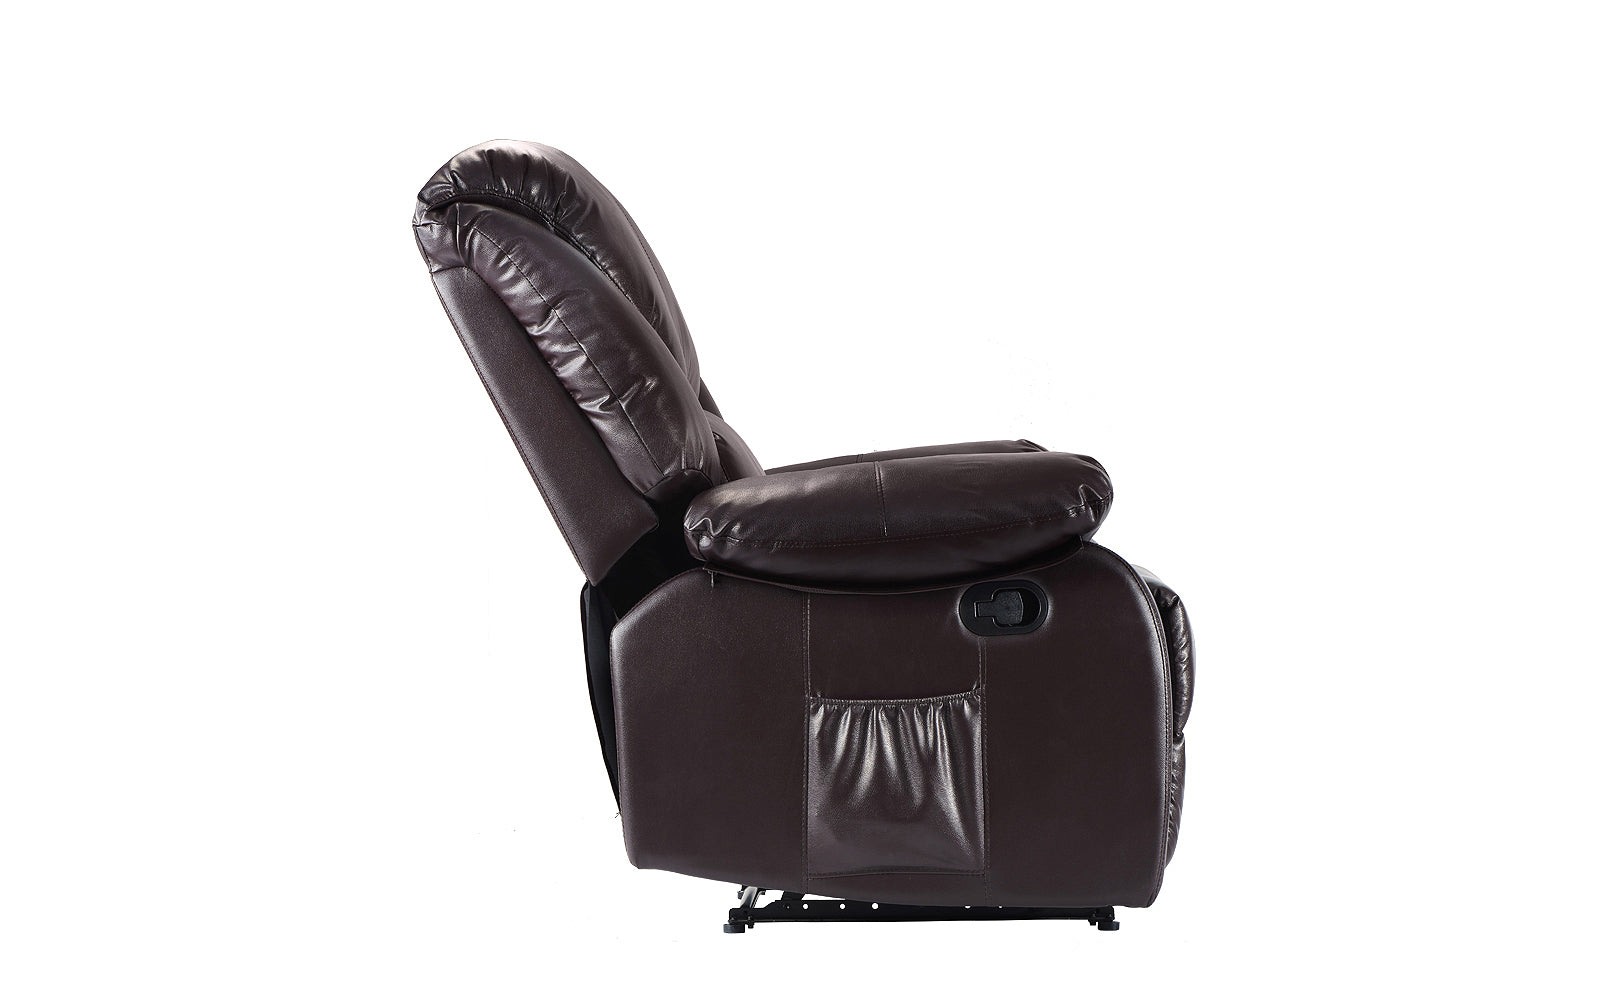 ... Bach Full Body Massage Recliner Chair Brown Profile ...